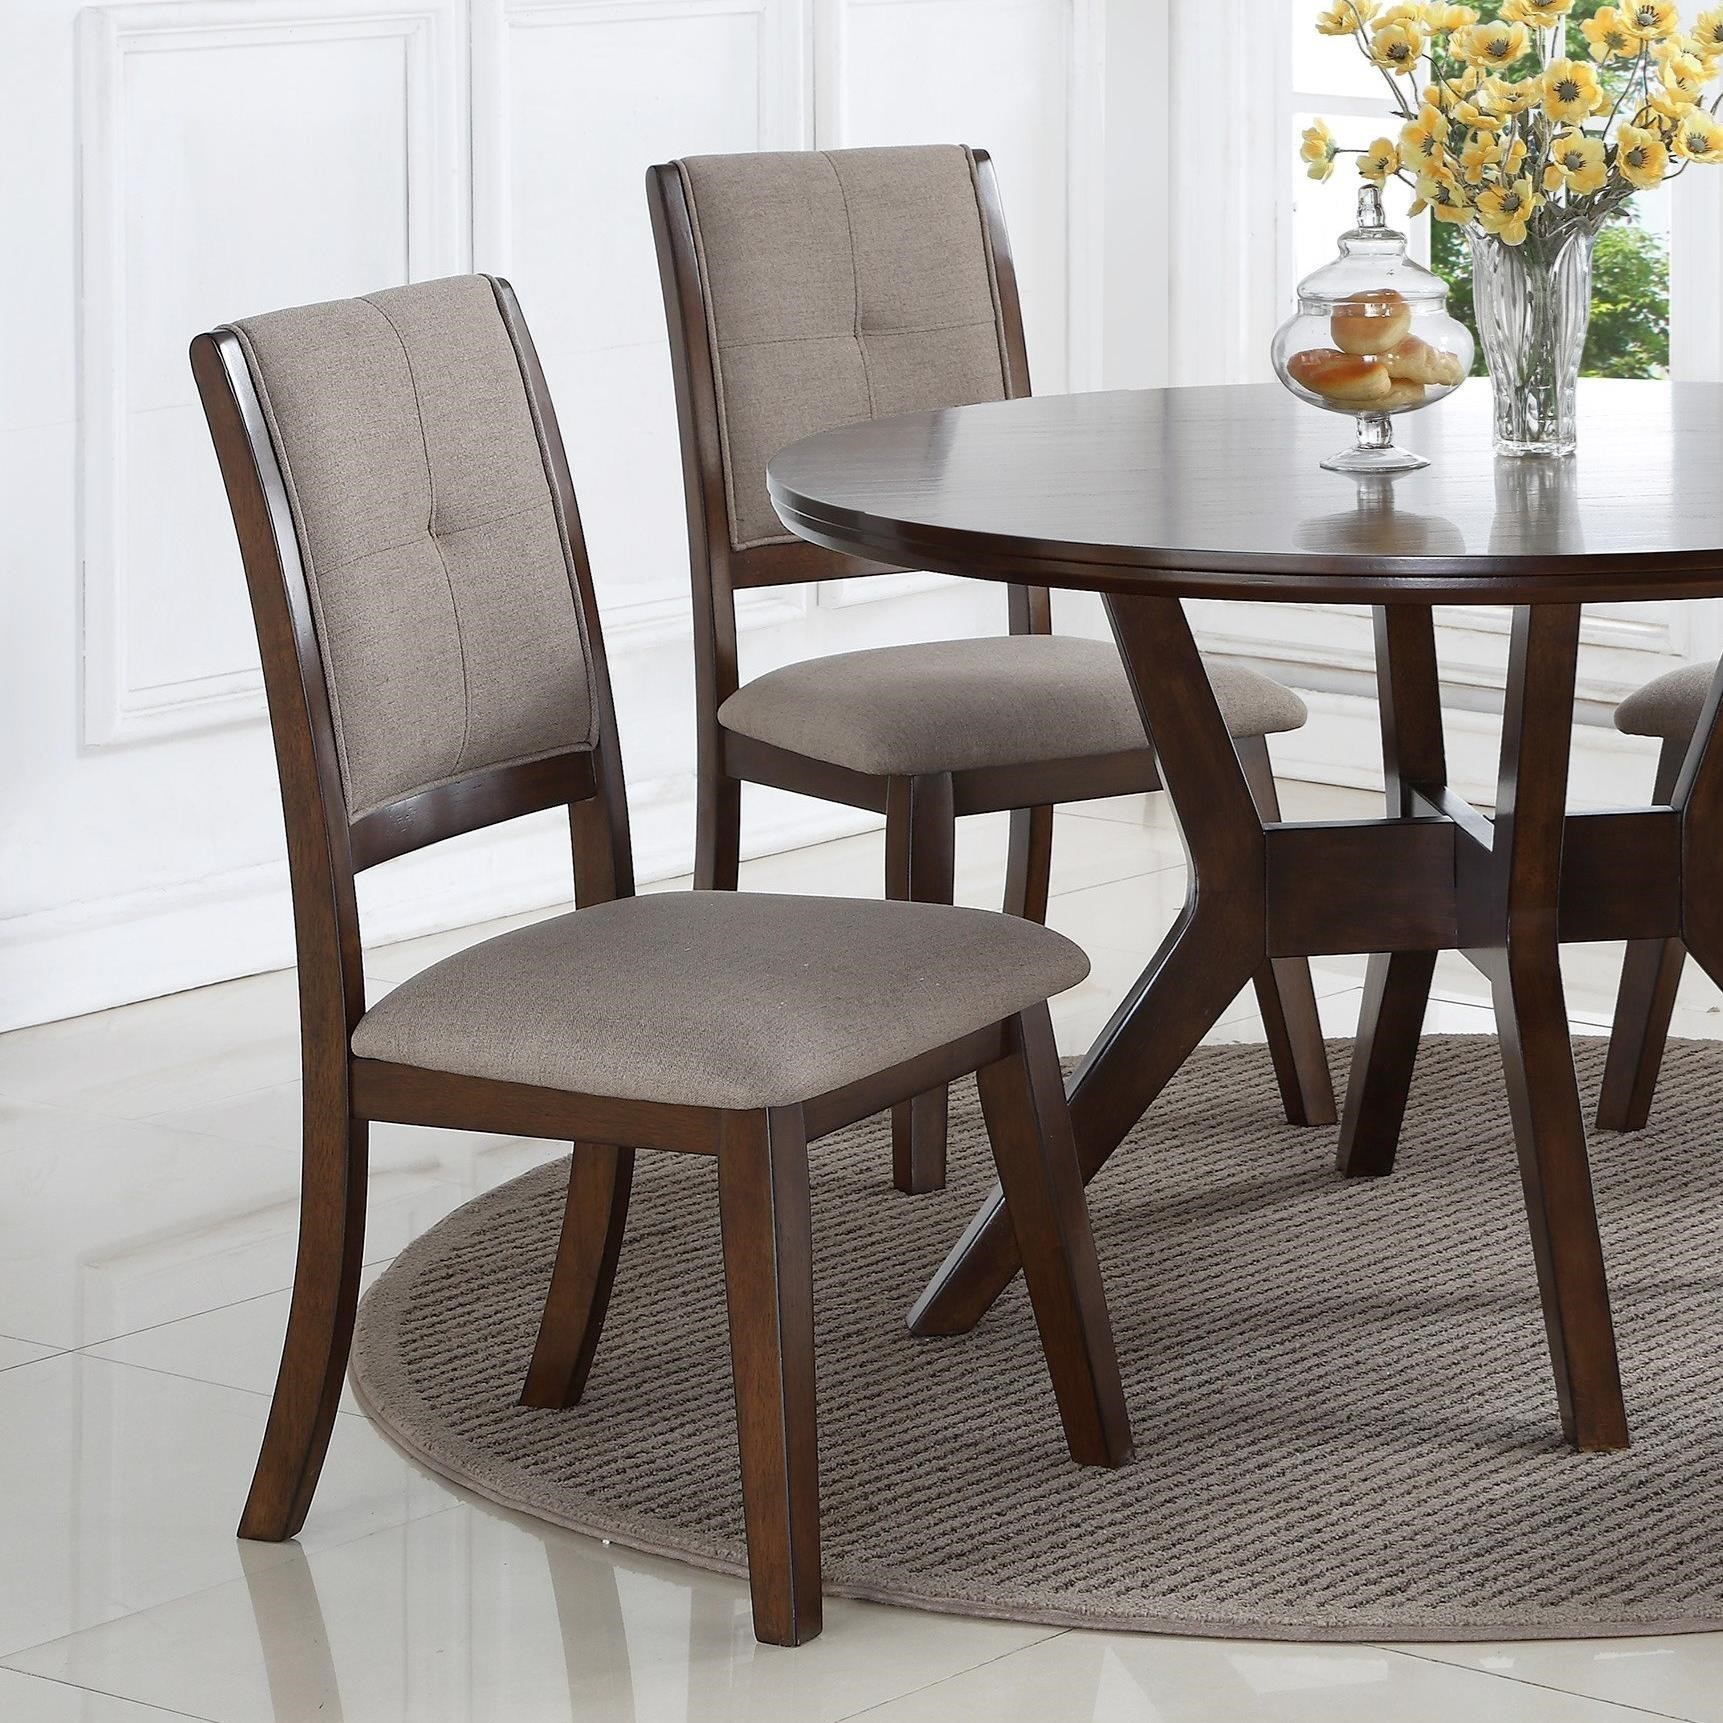 Barney Dining Chair by Crown Mark at Northeast Factory Direct